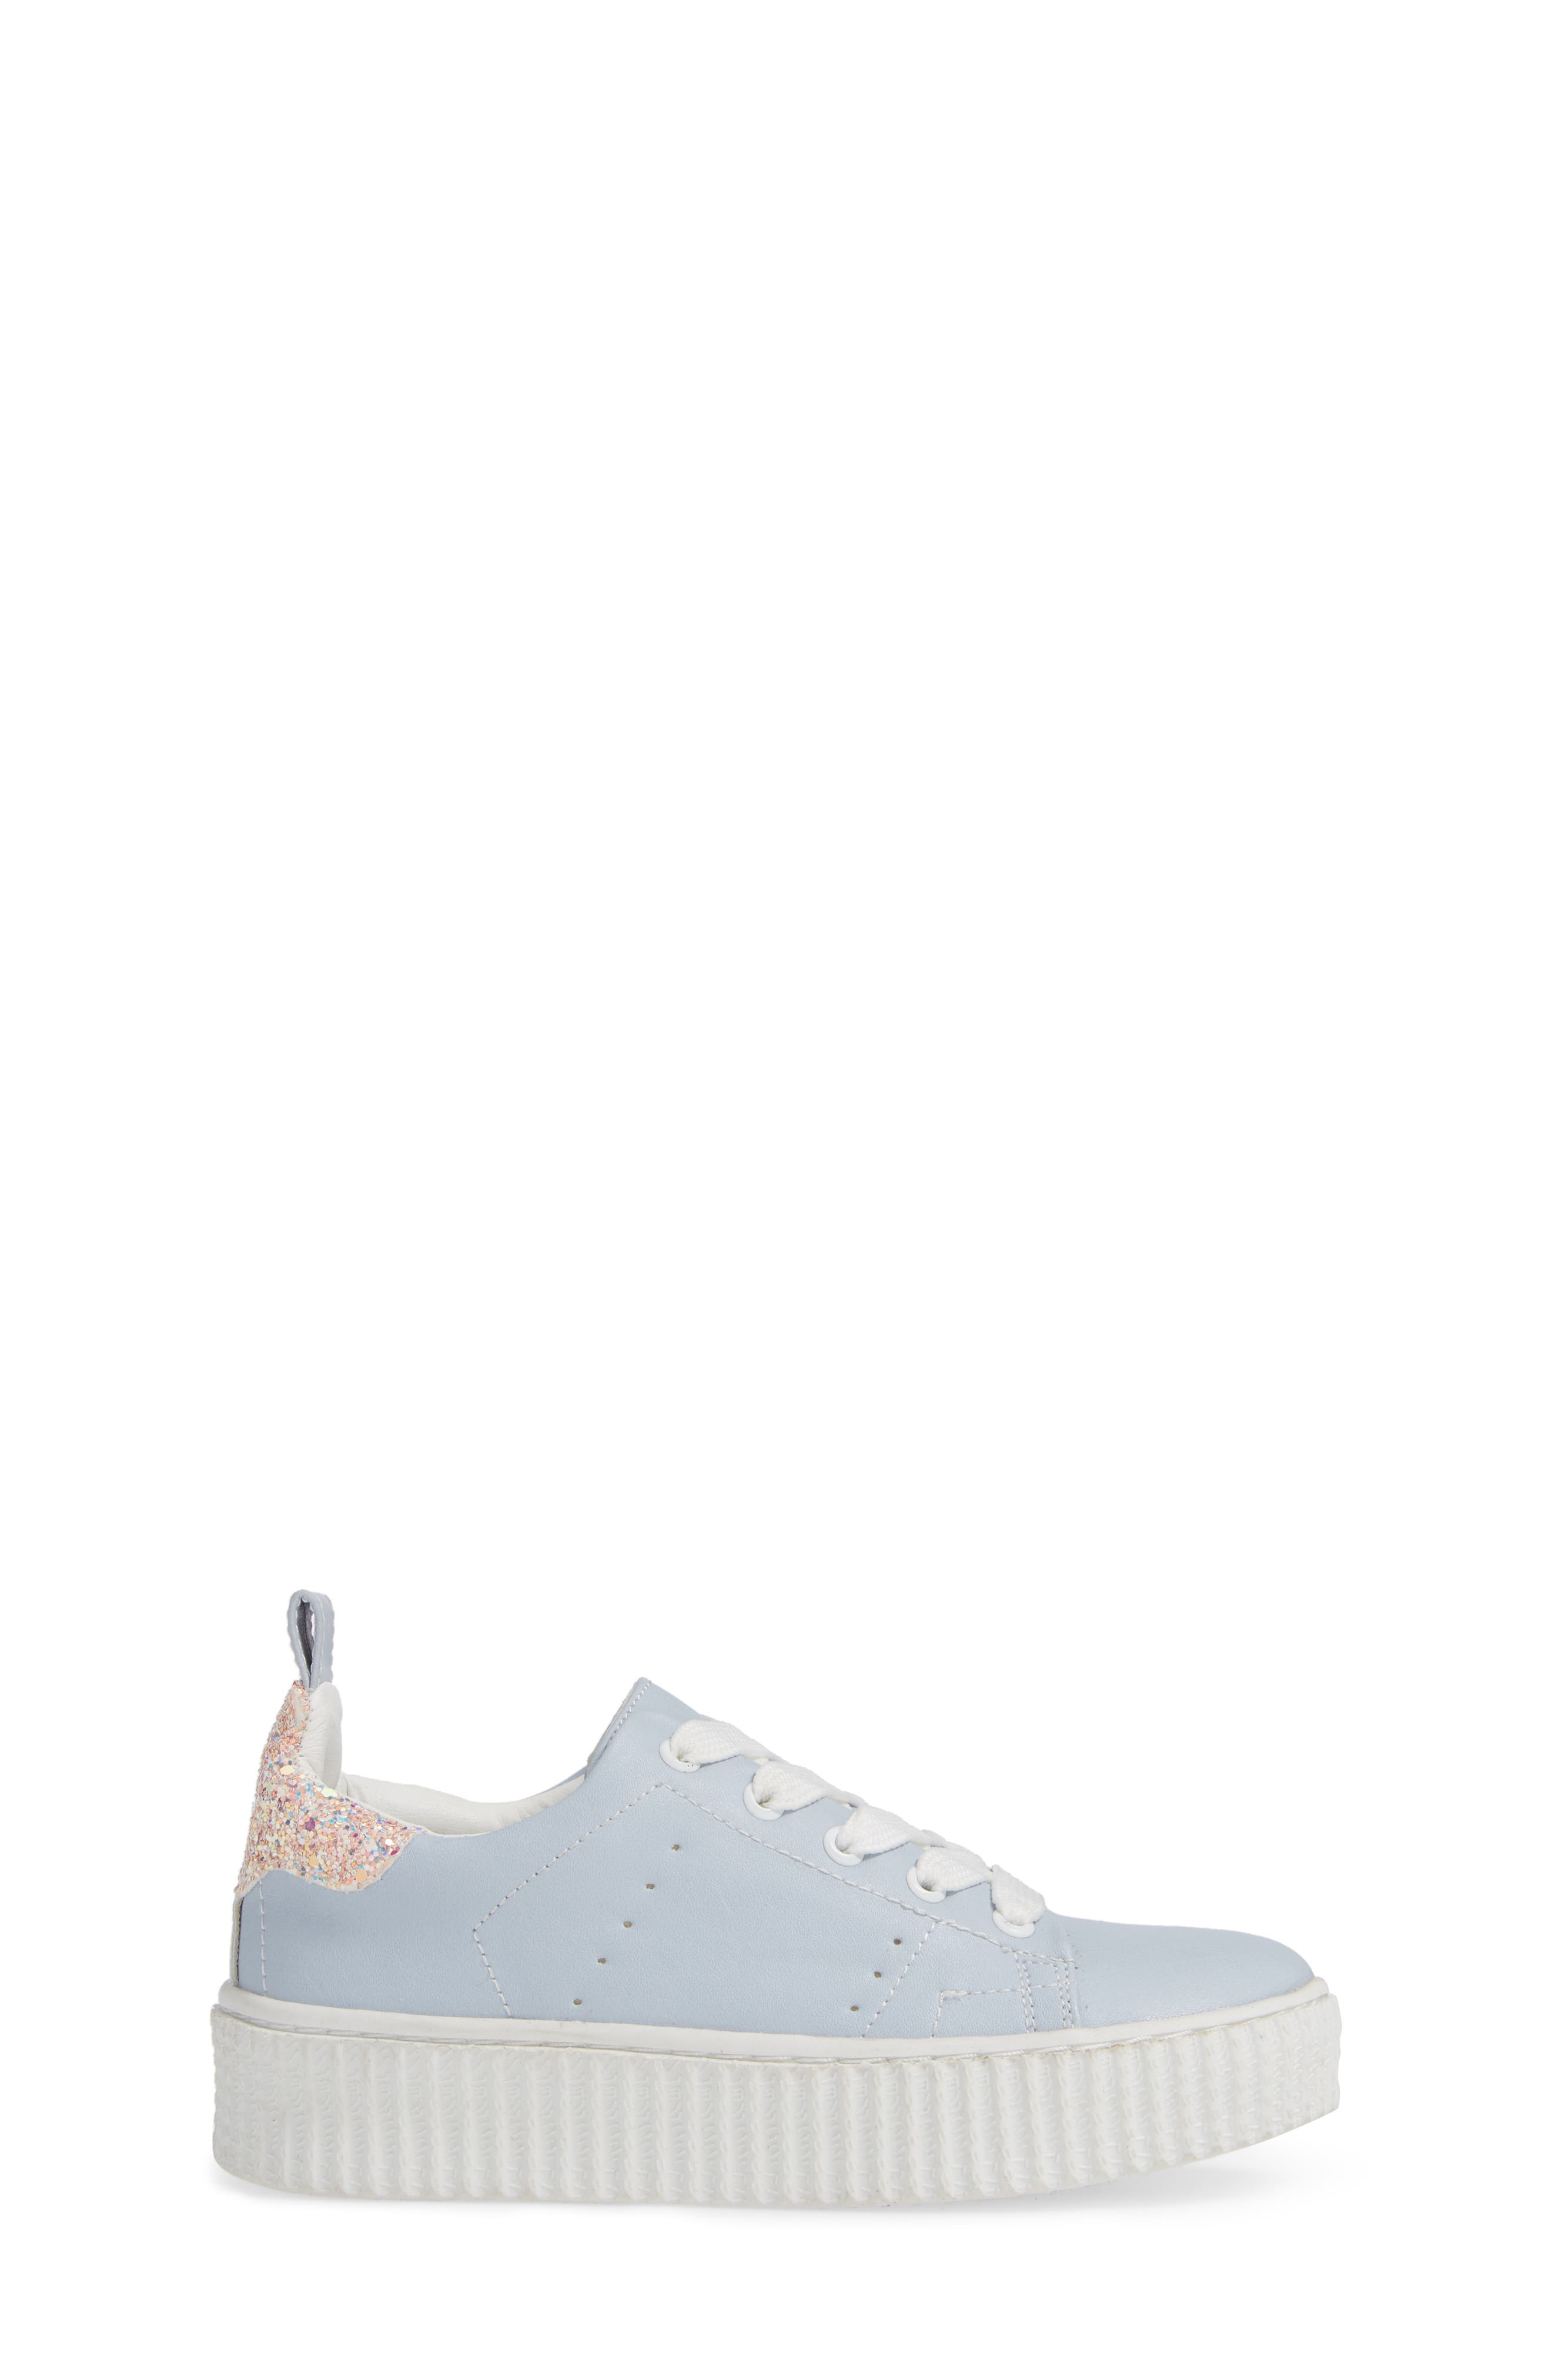 Wren Glitter Heel Sneaker,                             Alternate thumbnail 3, color,                             LIGHT BLUE